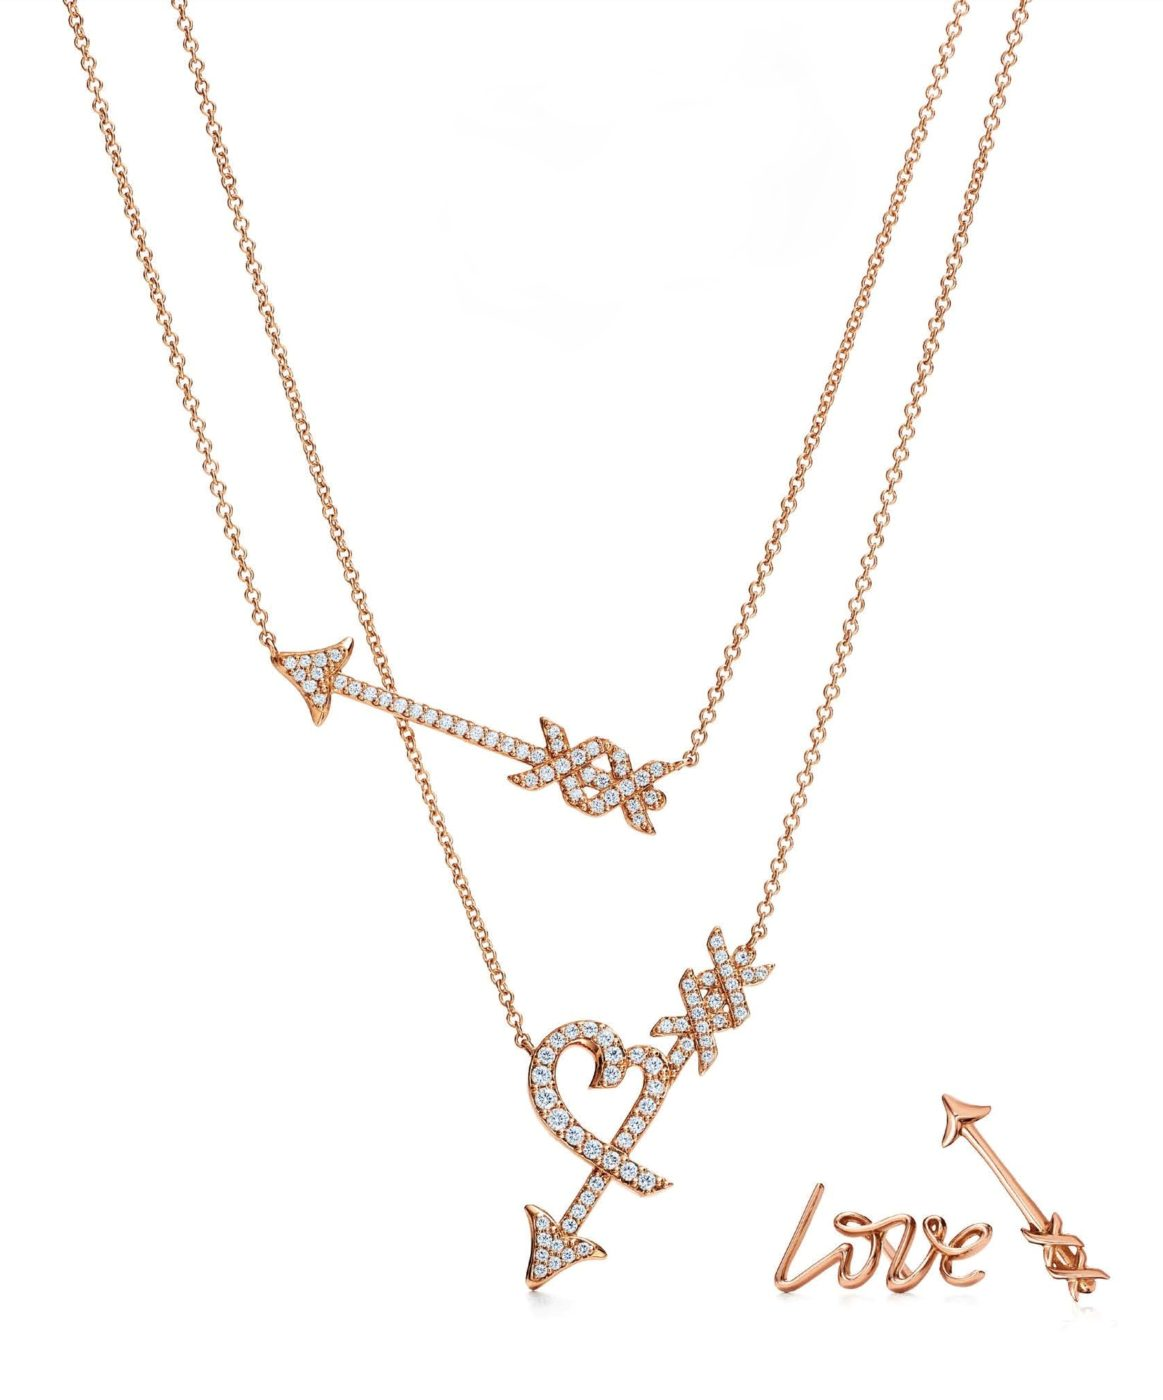 Tiffany & Co. 2017 Valentine's Day Gift Guide